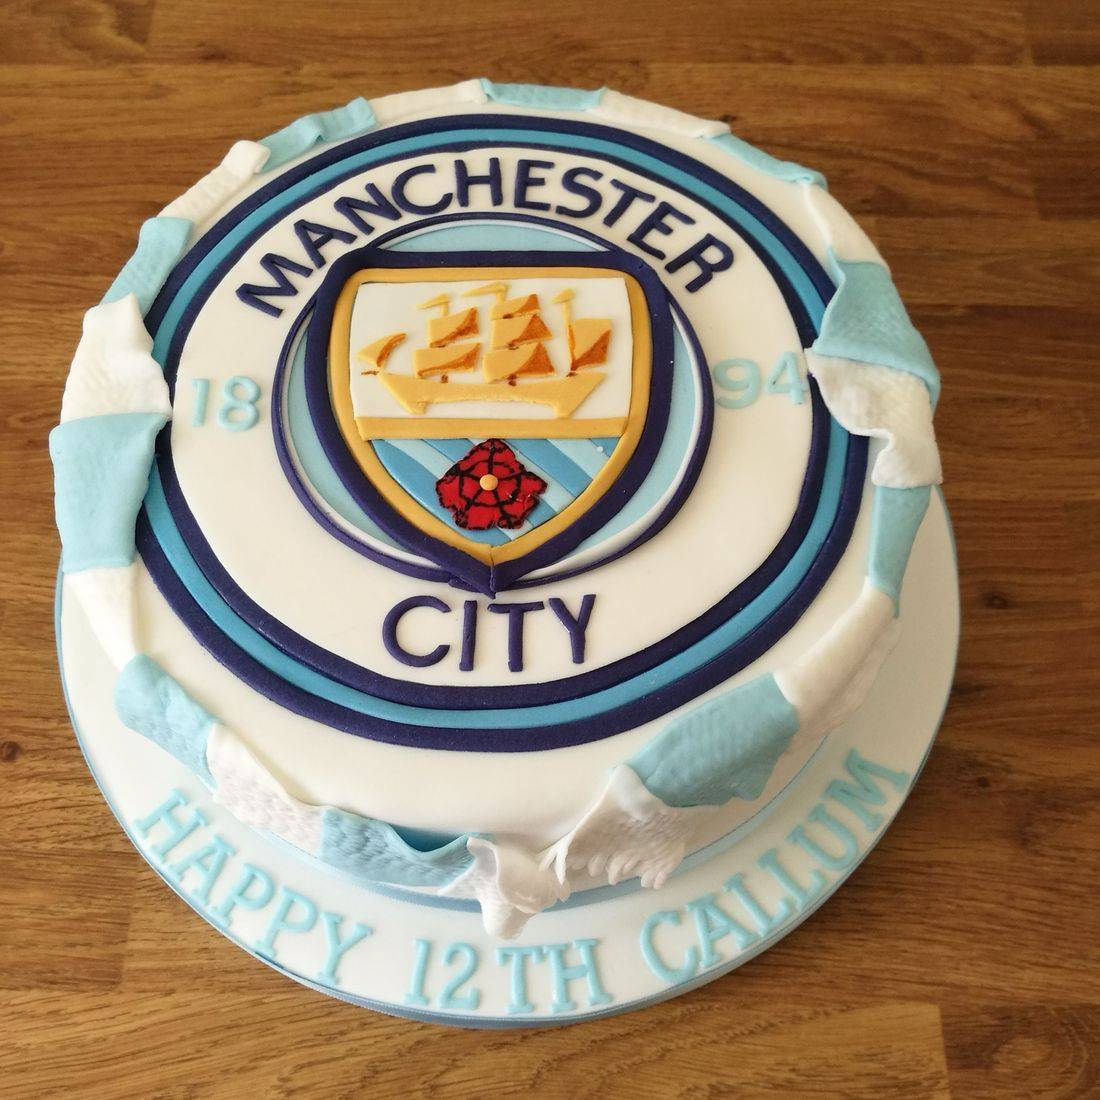 Manchester City Football Club Cake